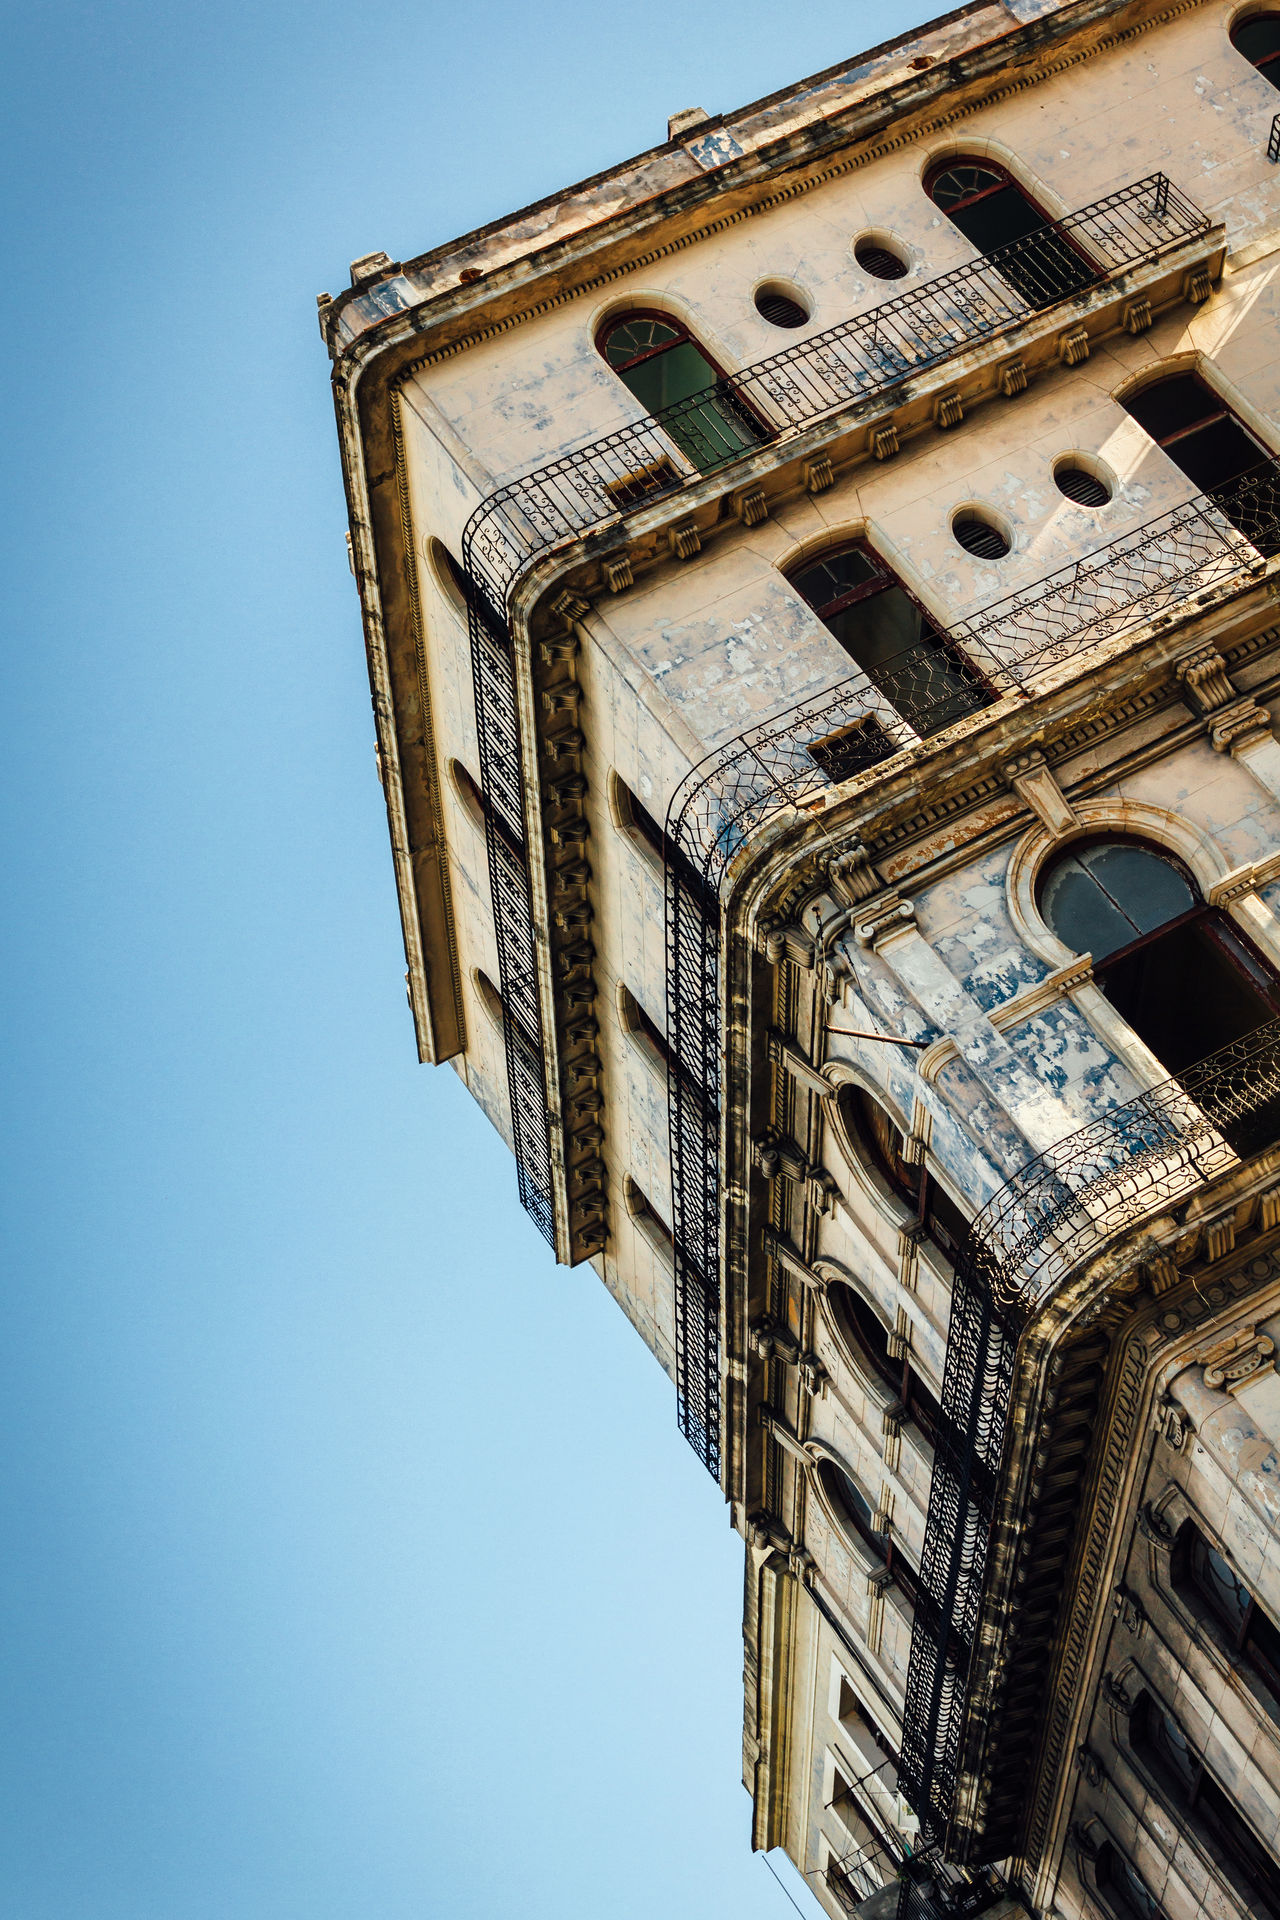 Architecture Building Exterior Built Structure Clear Sky Cuba Collection Cuban Life From My Point Of View Geometric Shape Low Angle View Old Buildings Outdoors Sky